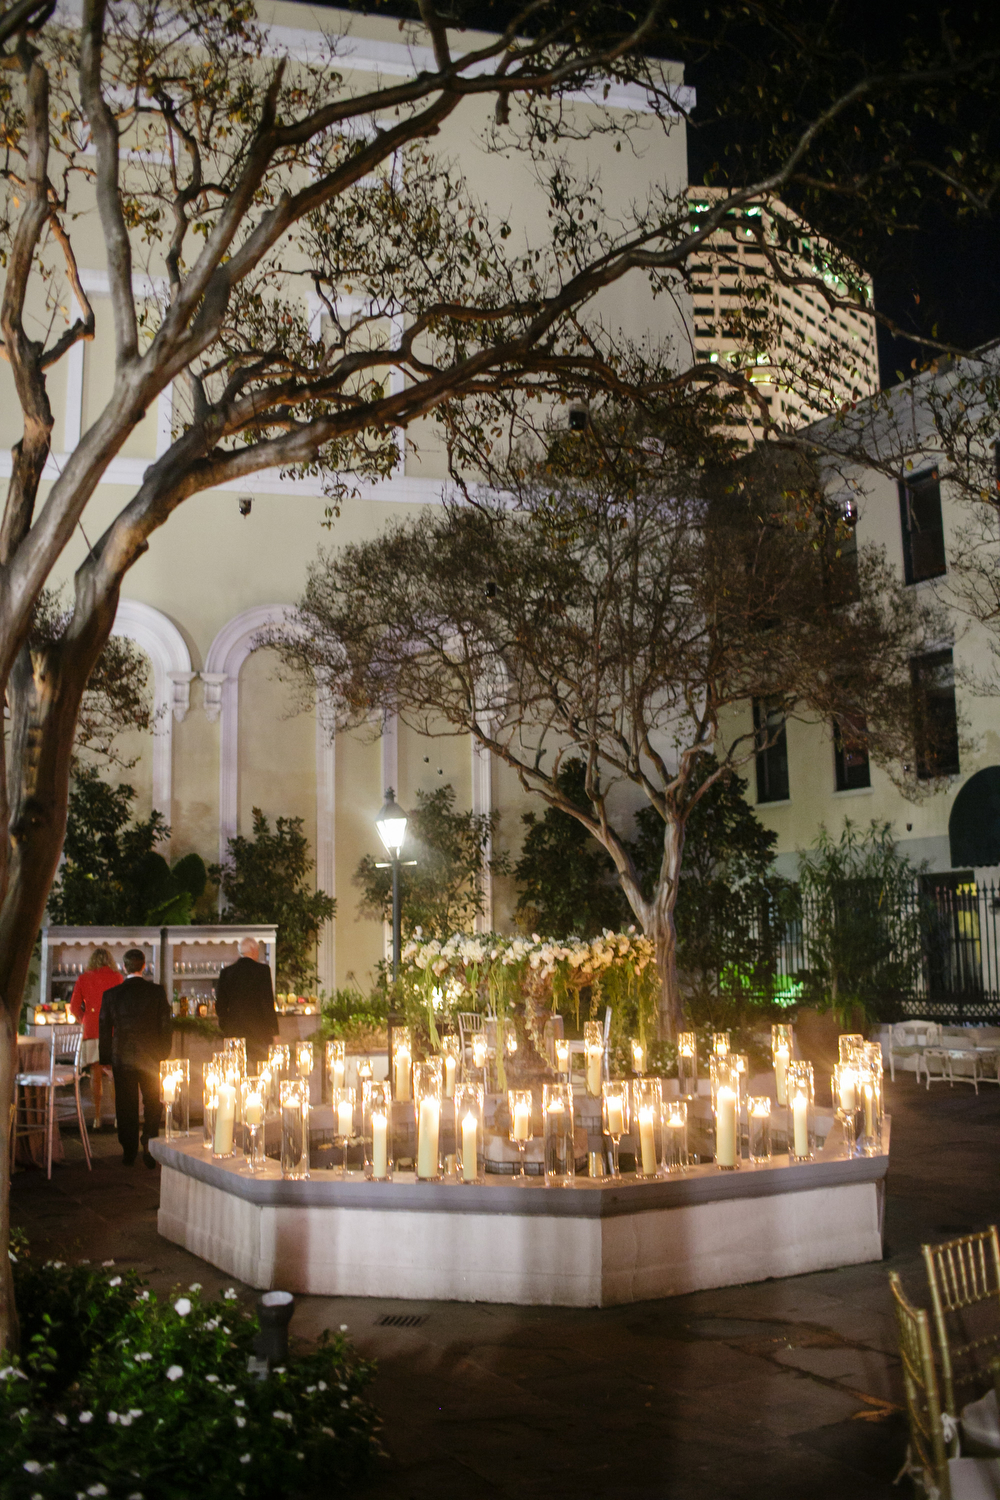 lots of pillar candles in glass hurricane vases surrounding the edge of a fountain in a courtyard at night